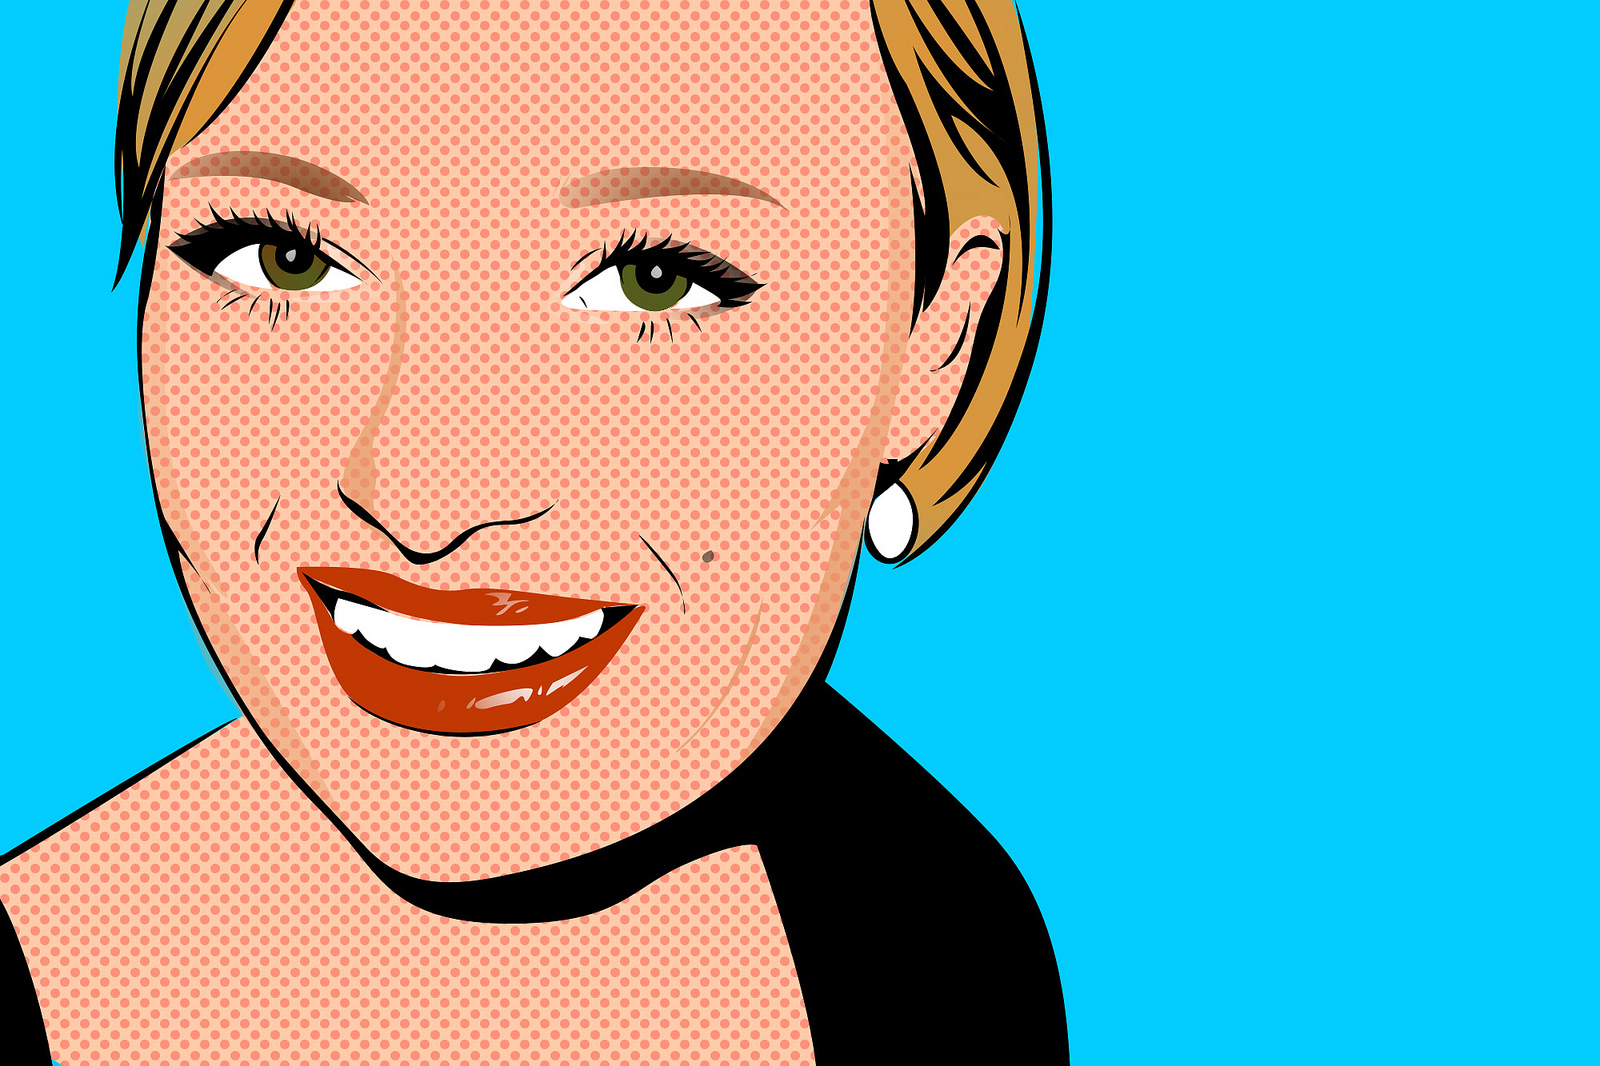 Caricature From Photo Online Make A Cartoon Of Yourself Girl Cartoon With Pop Art Style